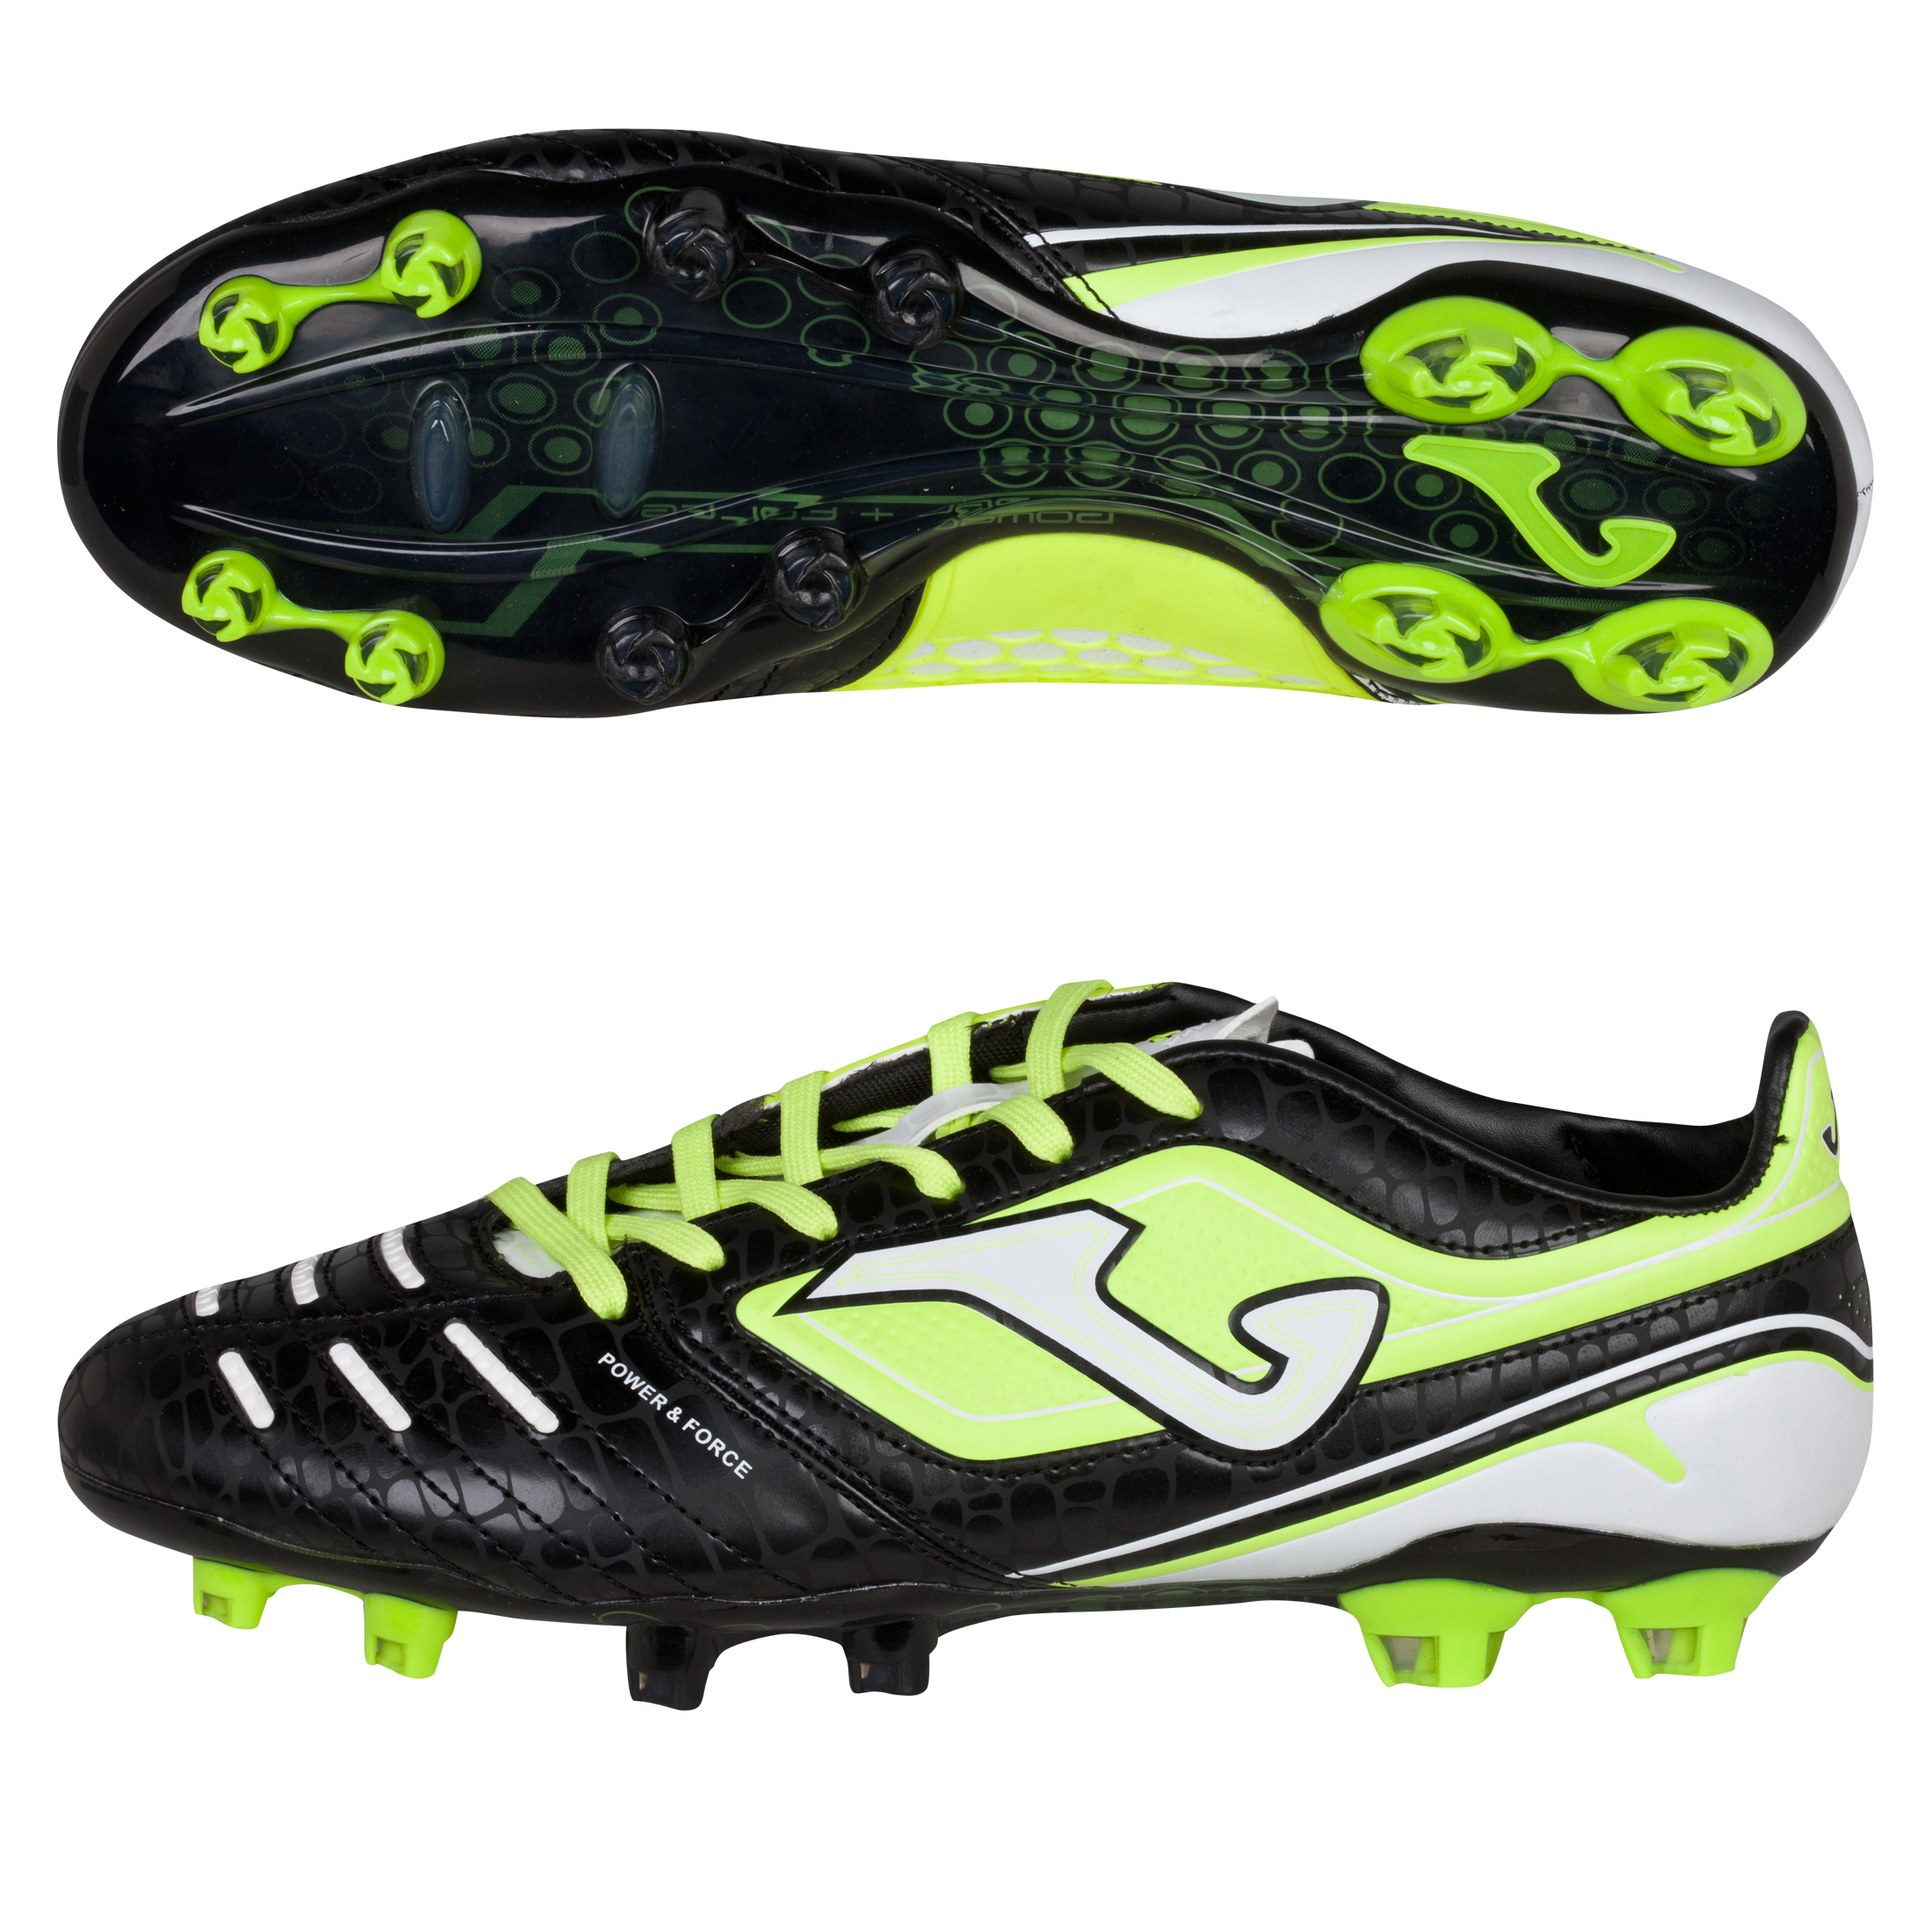 Joma Power Firm Ground Football Boots - Black/Lime/White